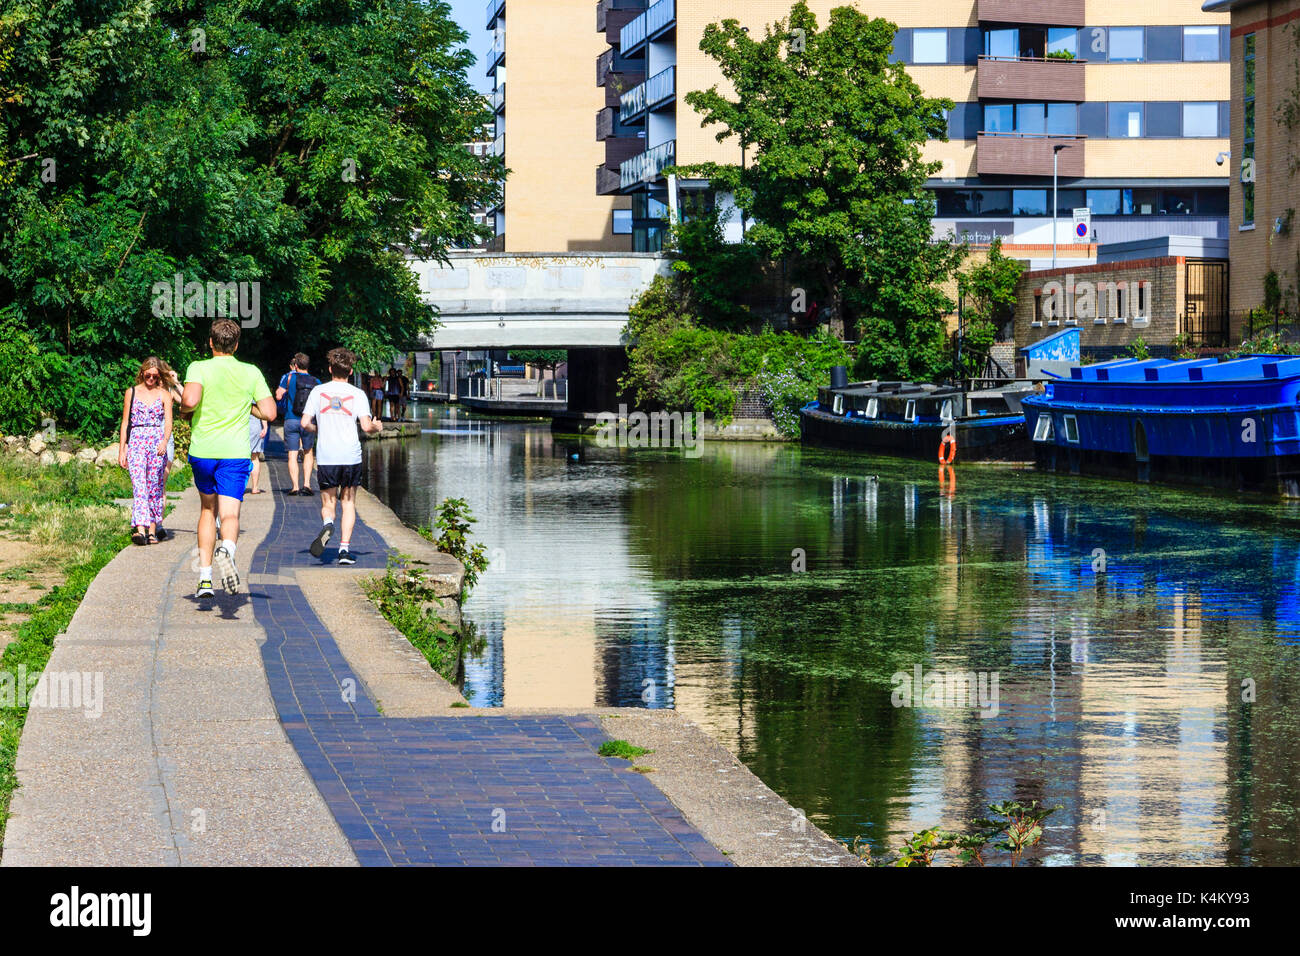 Walkers and joggers on the towpath of Regent's Canal, Islington, London, UK - Stock Image